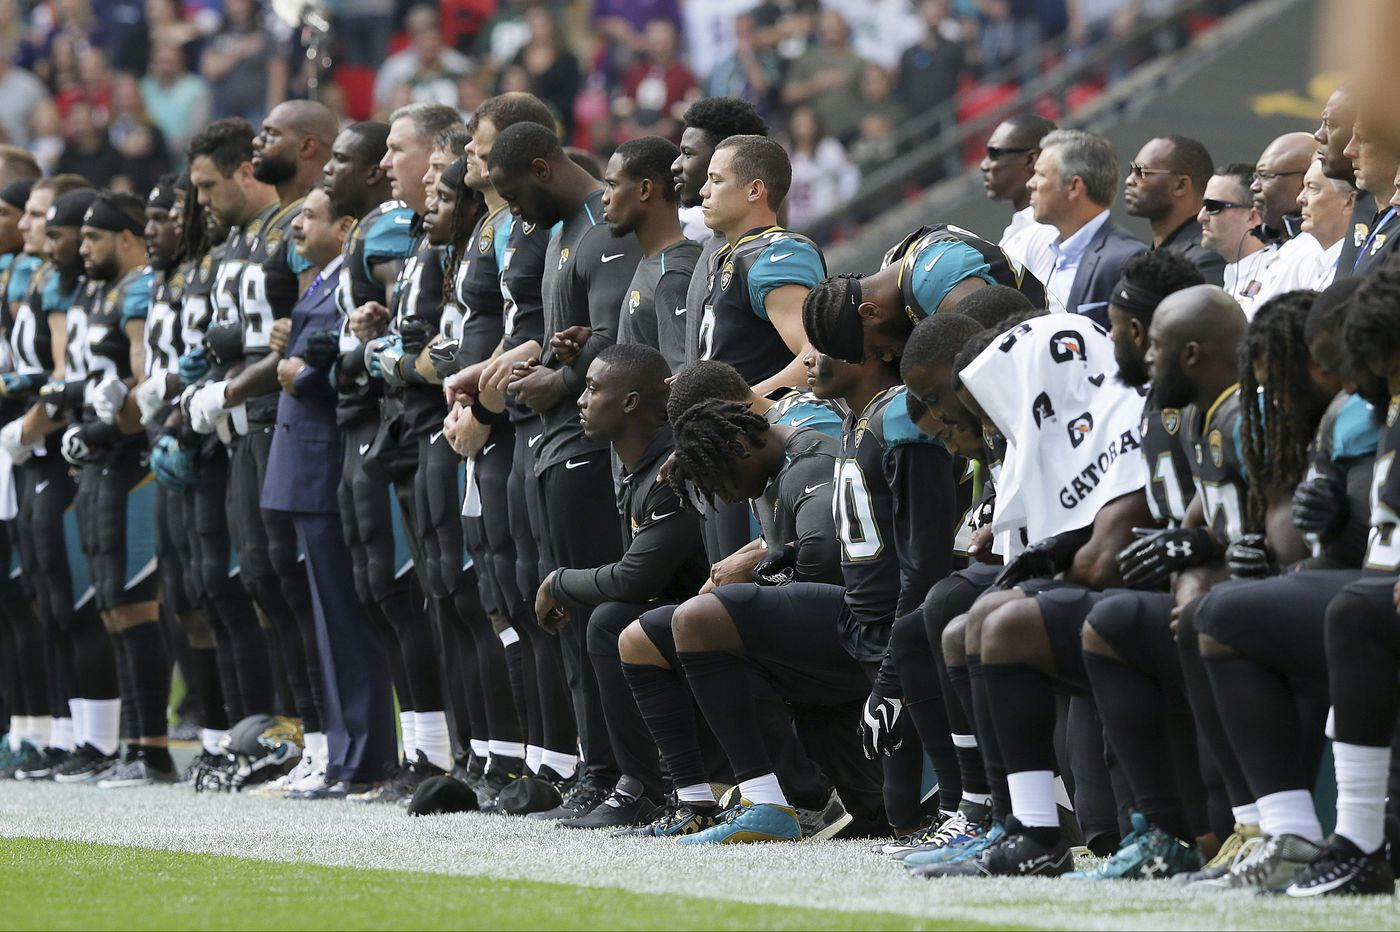 Kneeling NFL players will help Republicans in November | Opinion